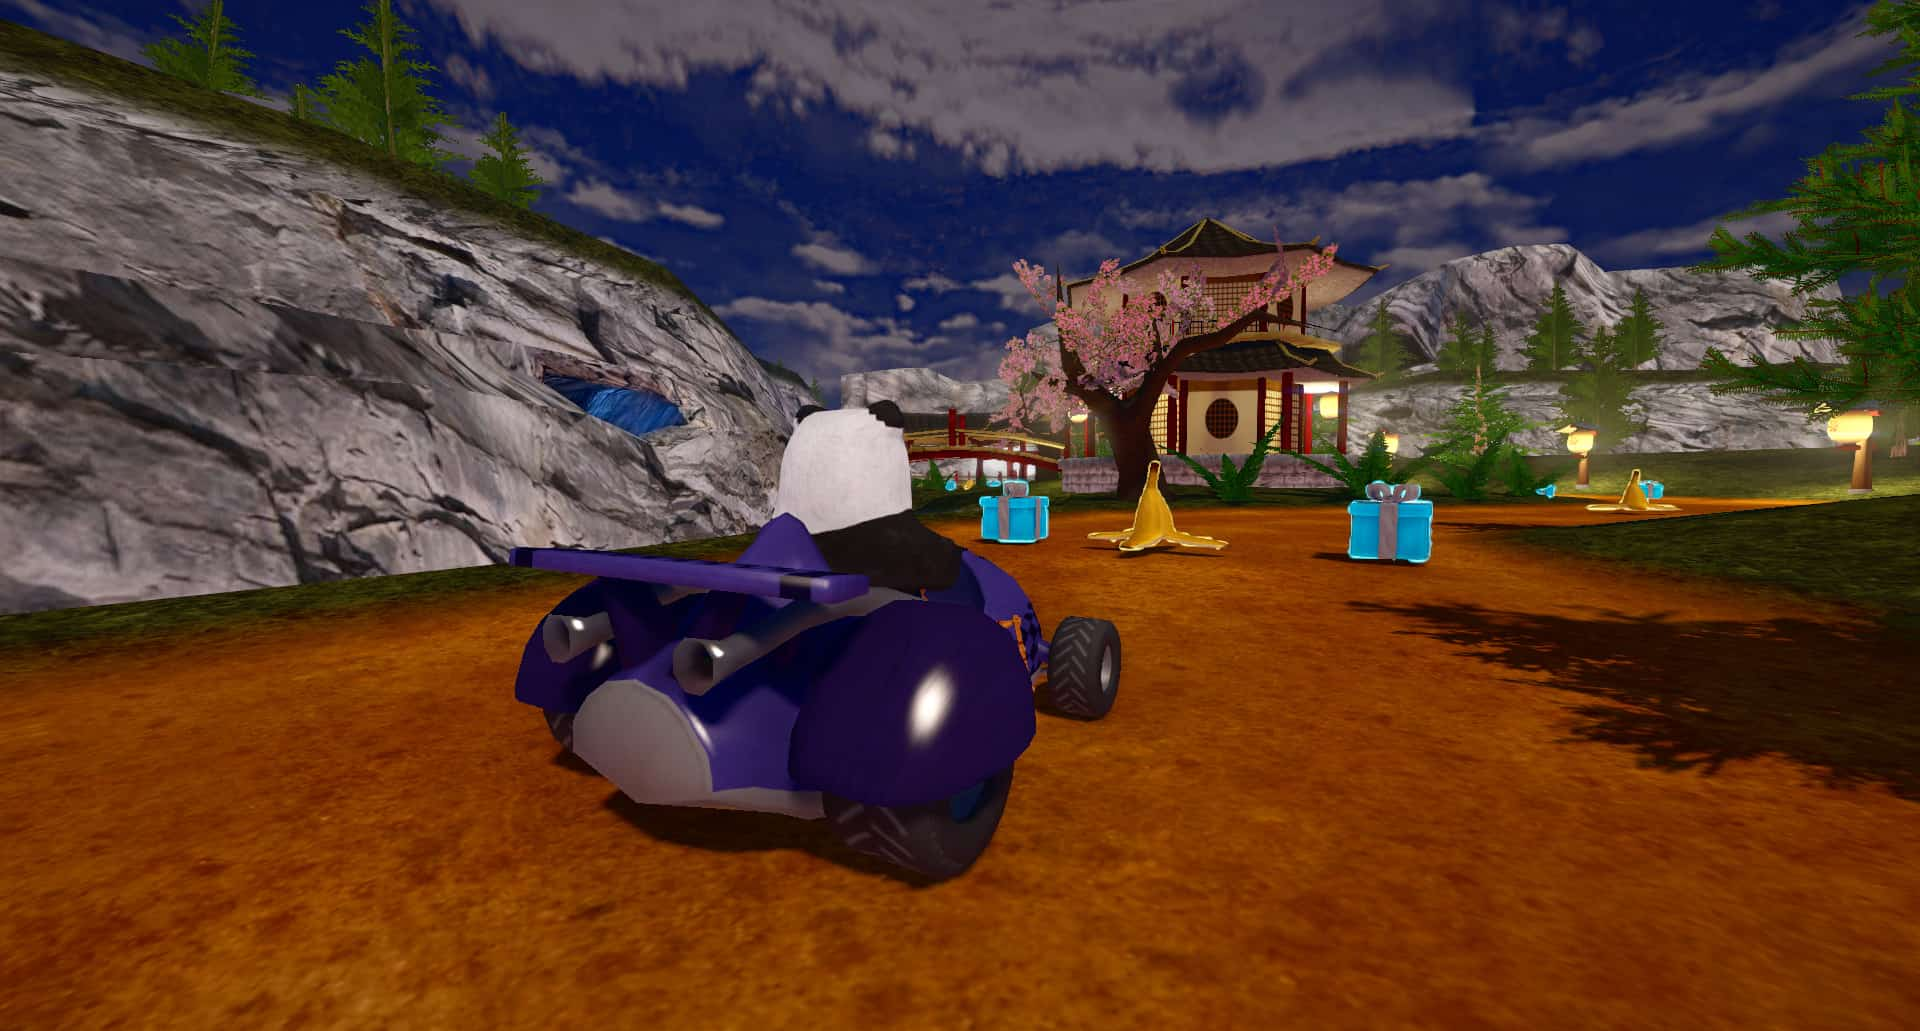 SuperTuxKart - a Free Download Kart Racing Video Game Featuring the Linux Mascot Tux